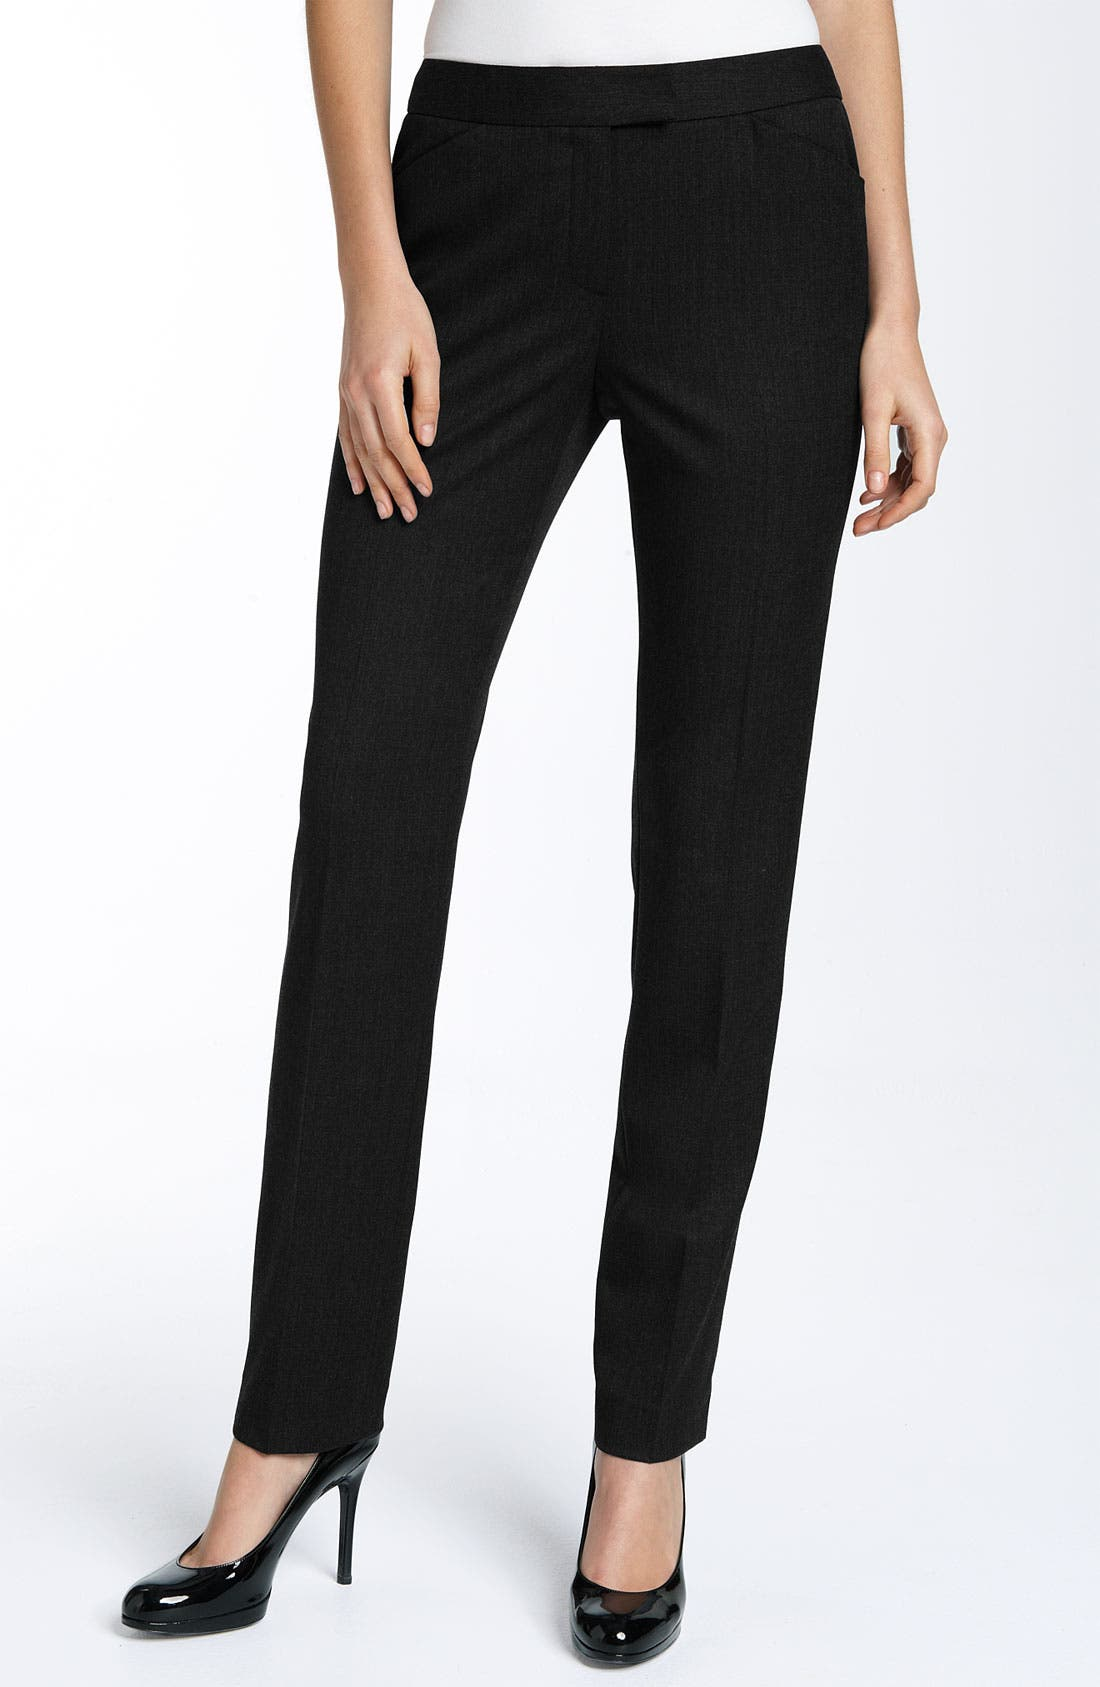 Alternate Image 1 Selected - Lafayette 148 New York 'Irving' Pants (Petite)